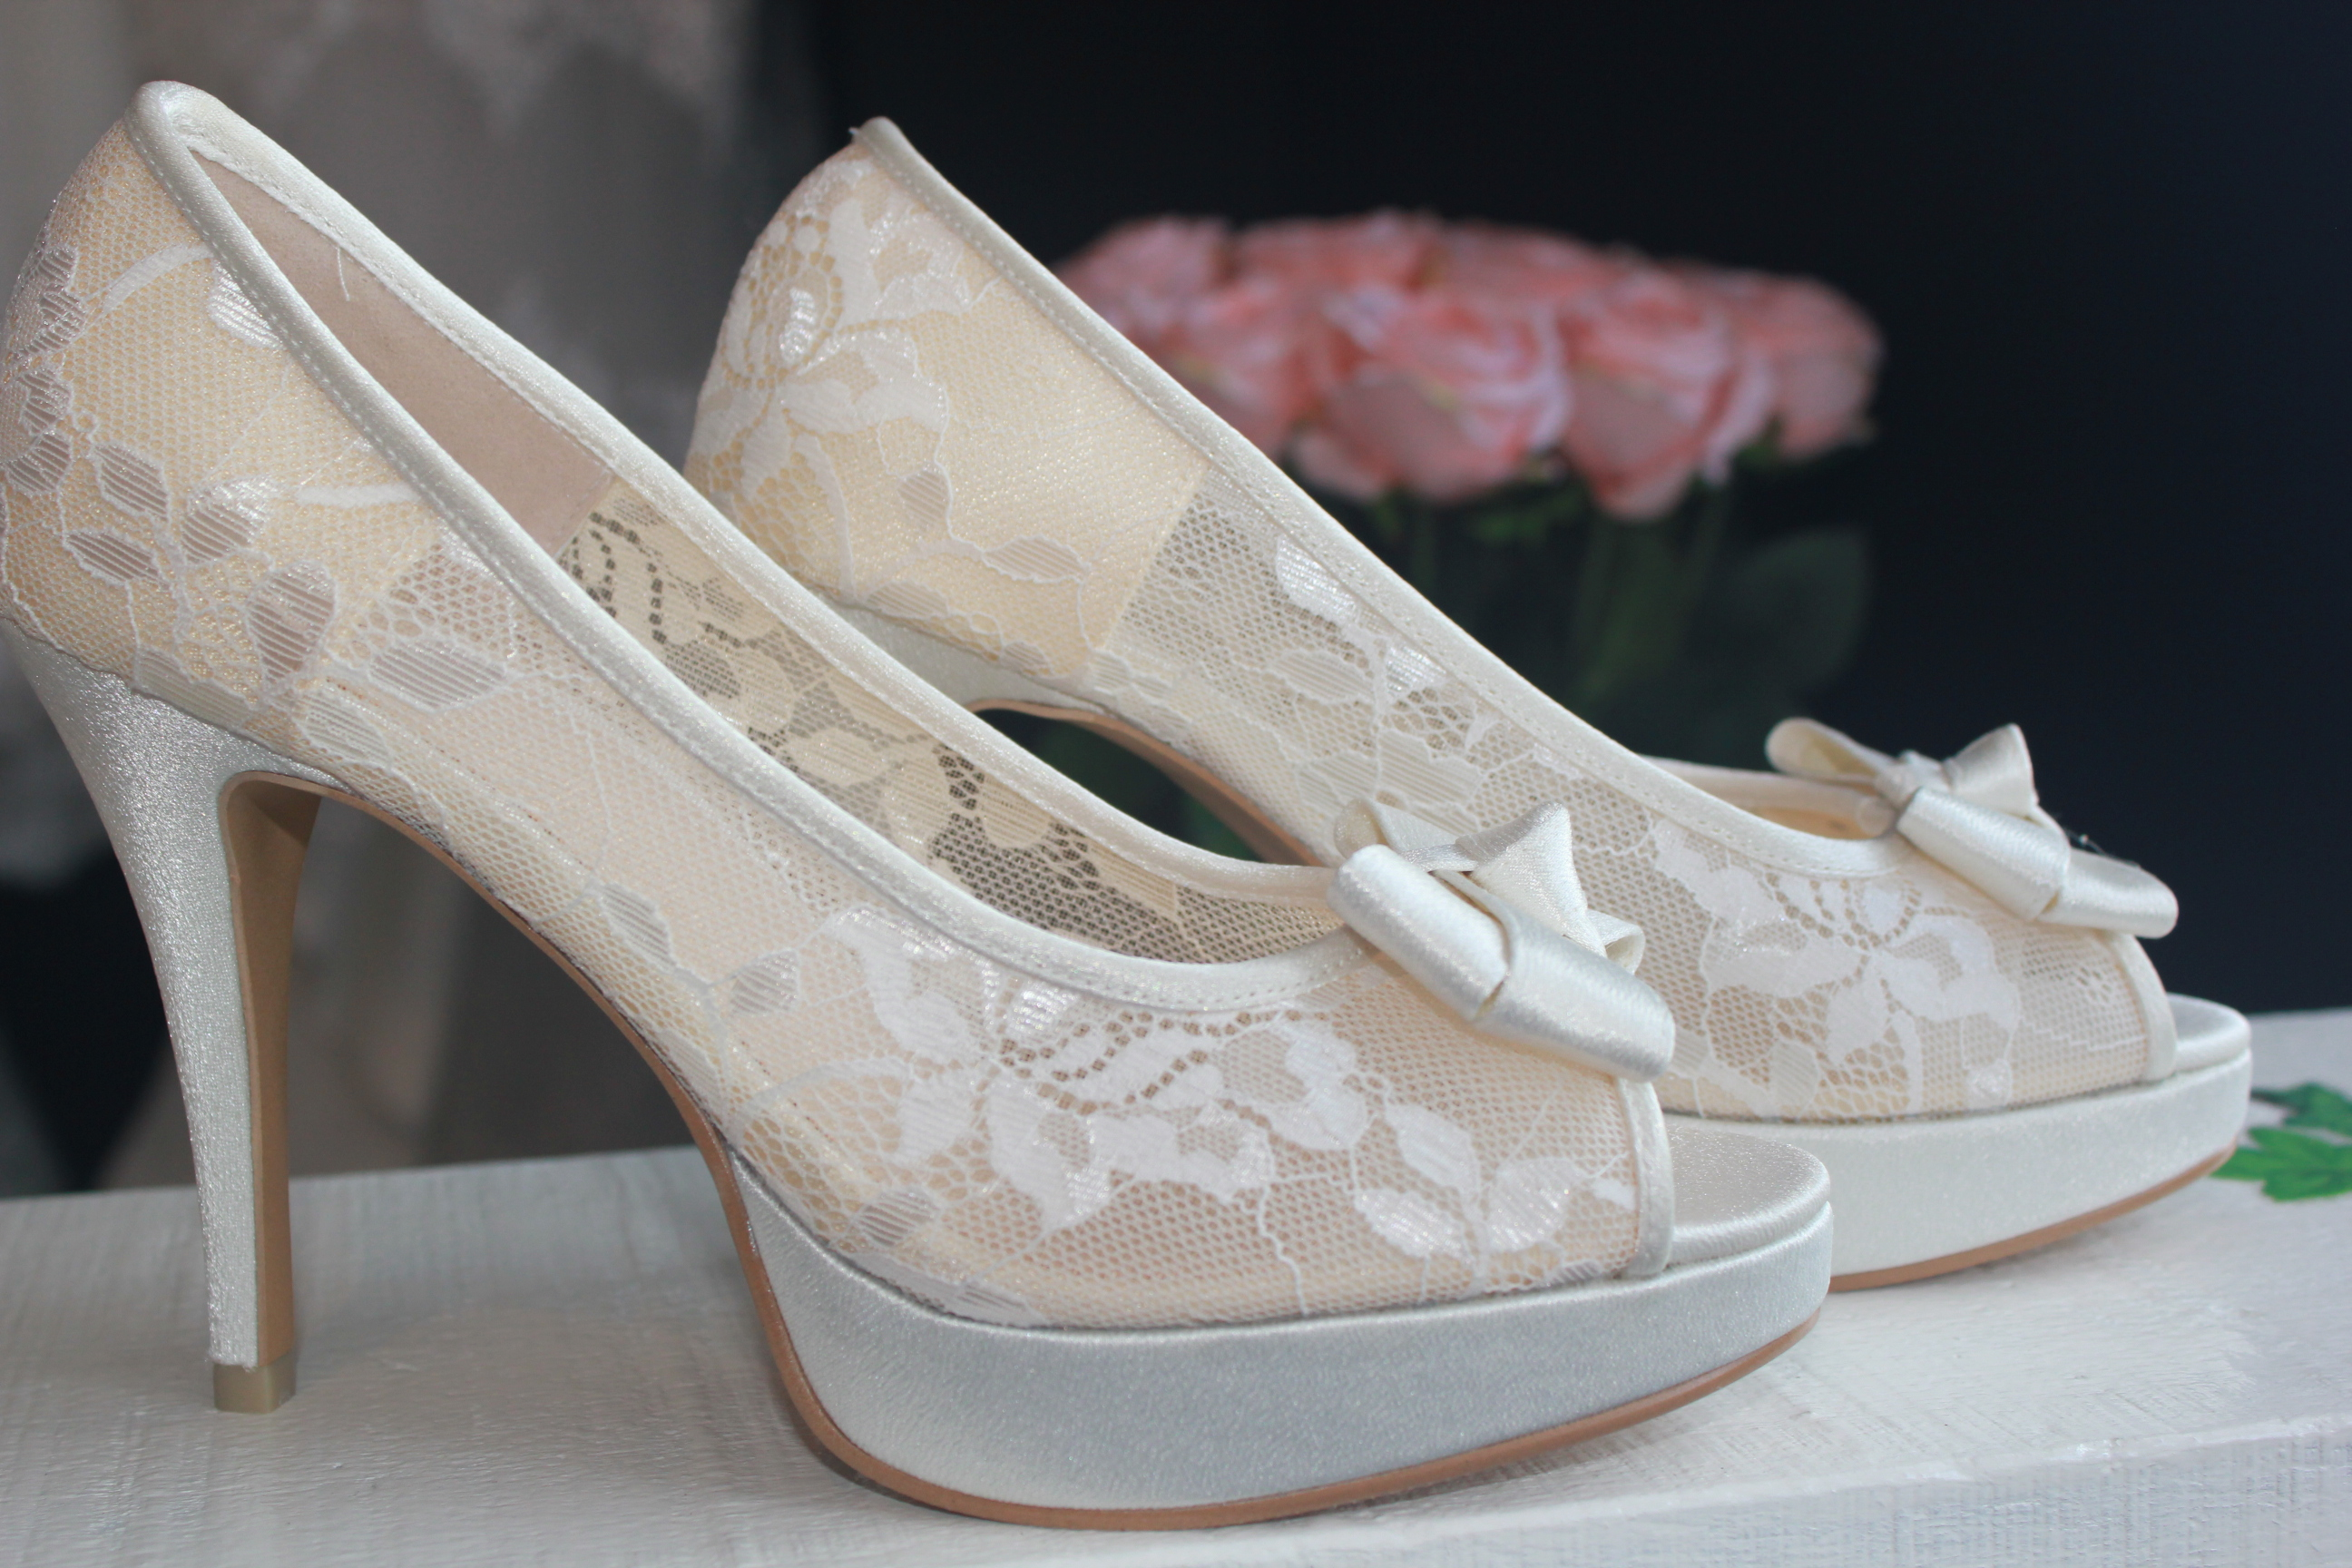 4 Inches Peep Toe With Front Bow / See Through Lace Bridal Shoes